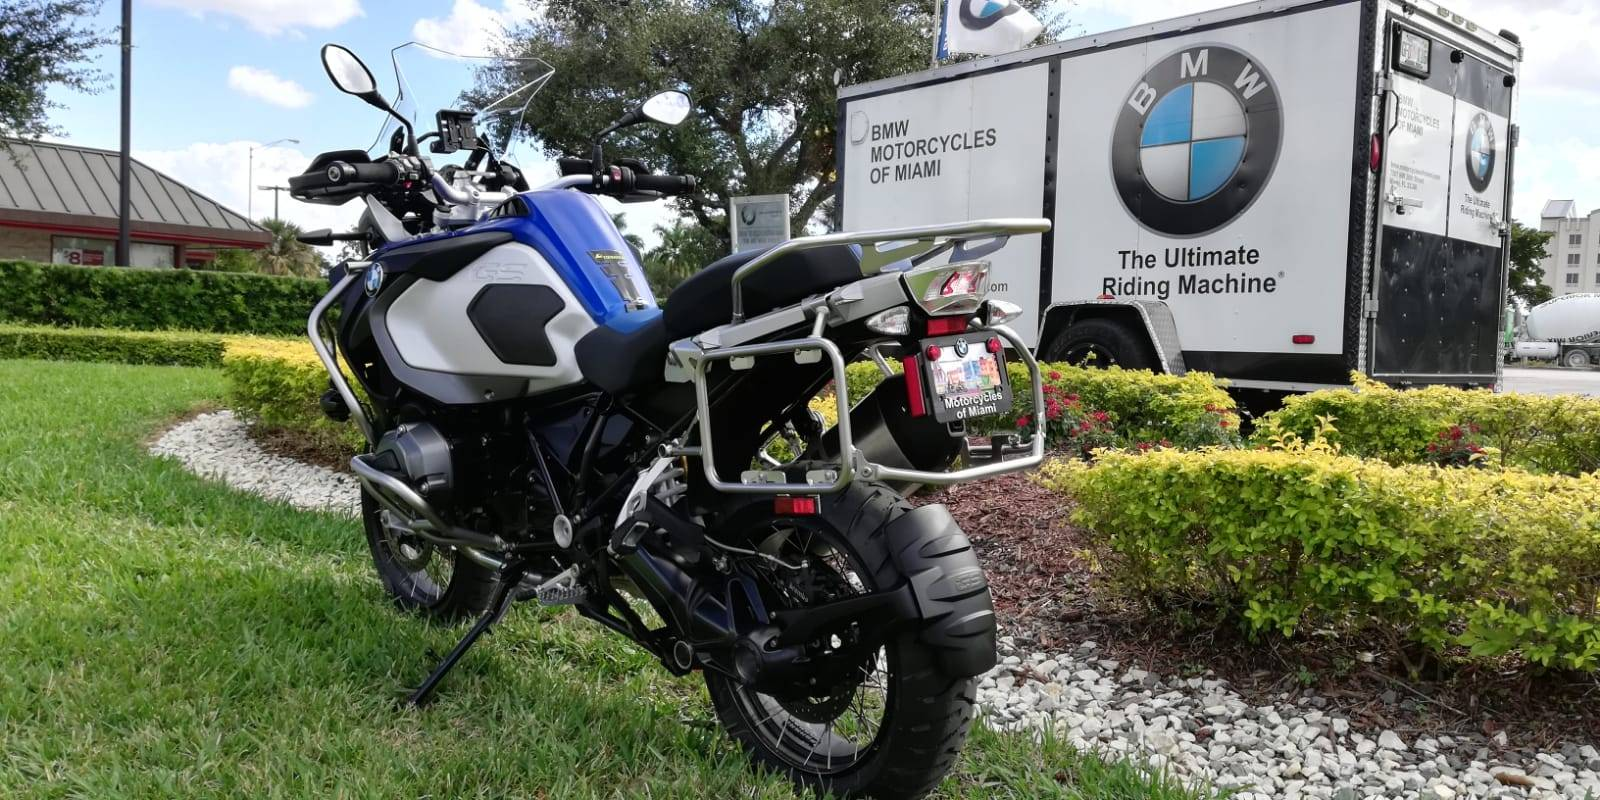 Used 2015 BMW R 1200 GSA for sale, BMW R 1200GSA for sale, BMW Motorcycle R1200GSA, used BMW Adventure, Dual, GS, BMW. BMW Motorcycles of Miami, Motorcycles of Miami, Motorcycles Miami, New Motorcycles, Used Motorcycles, pre-owned. #BMWMotorcyclesOfMiami #MotorcyclesOfMiami. - Photo 10